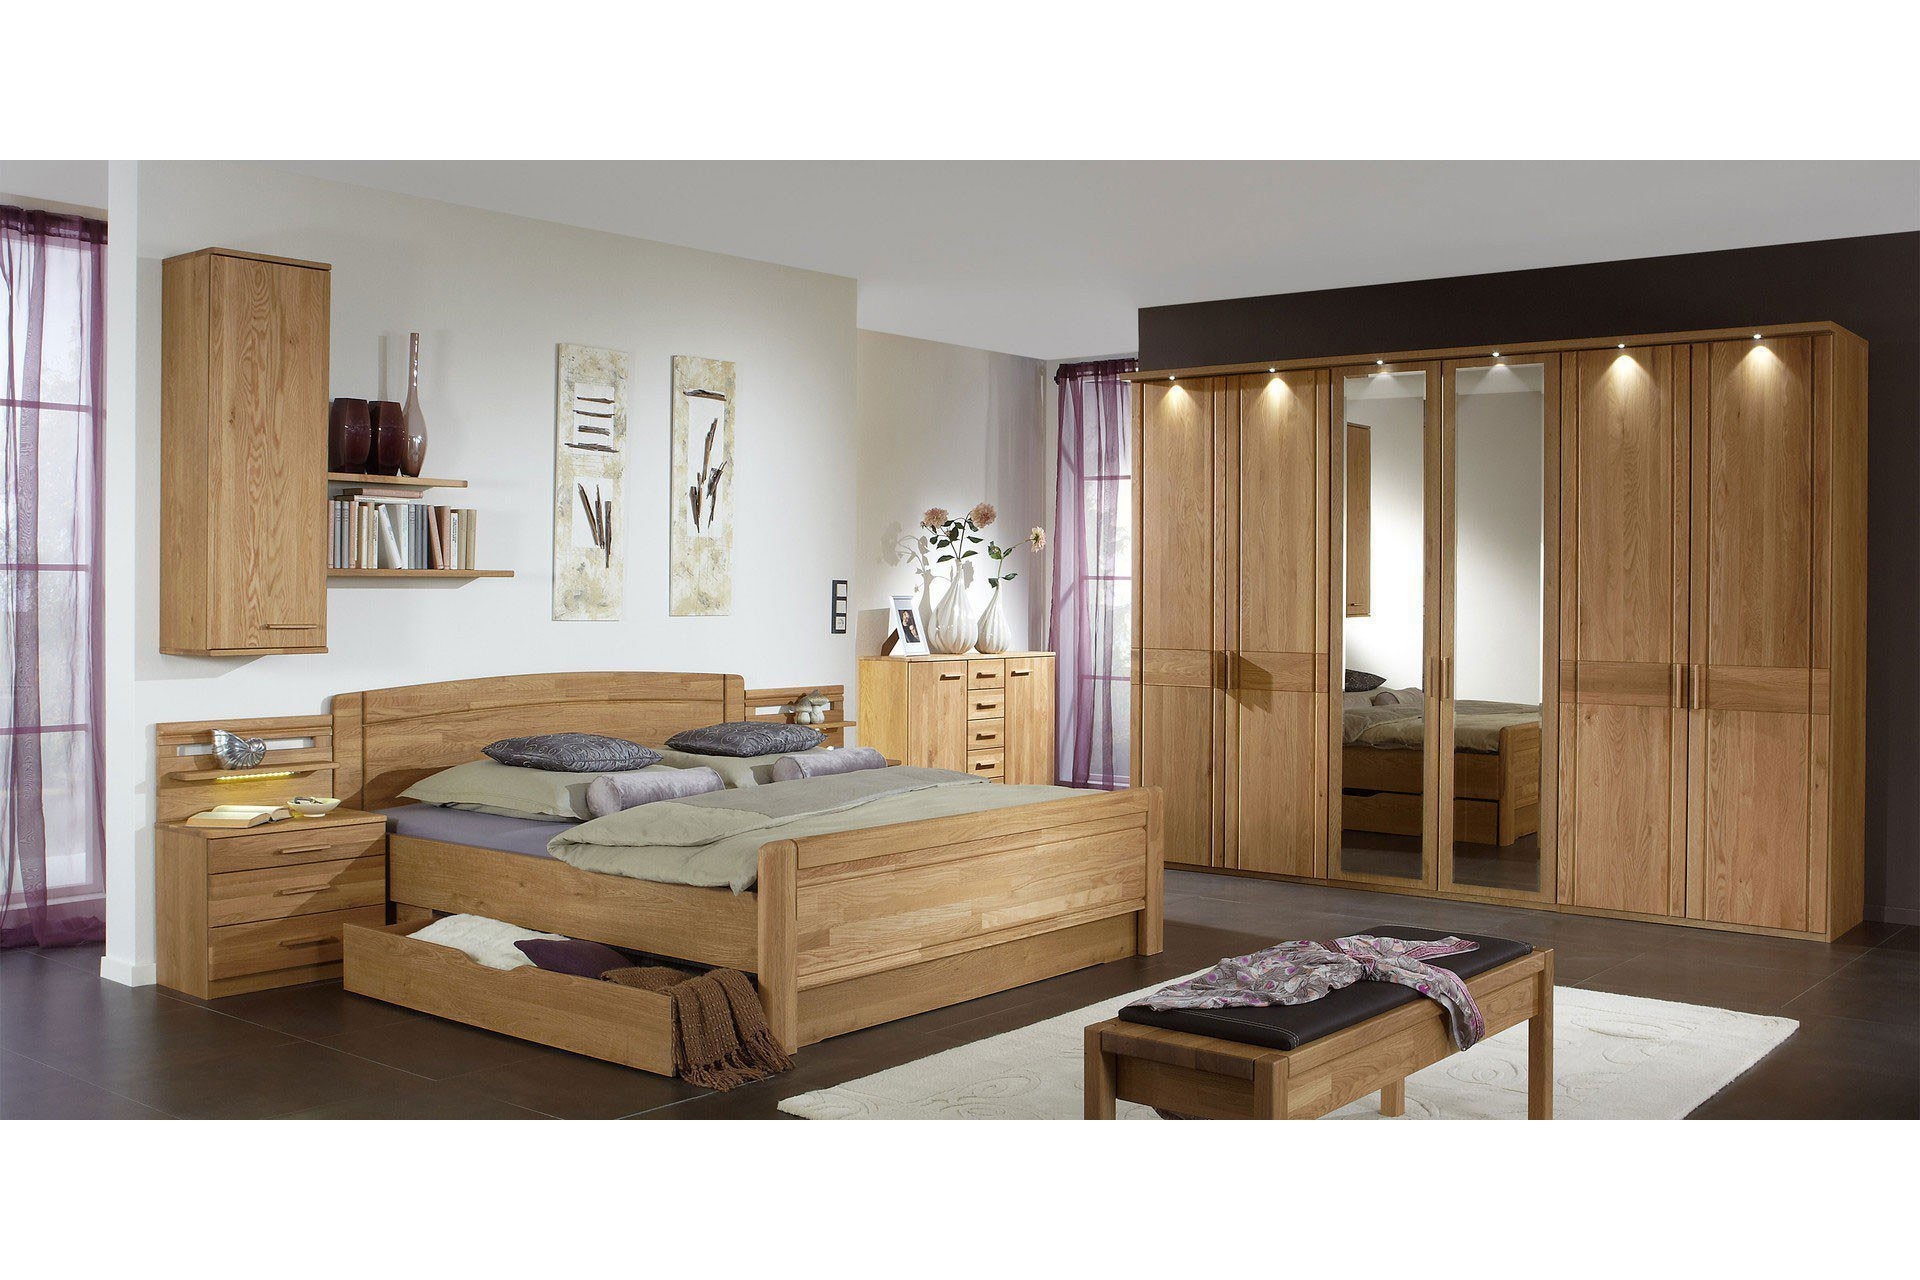 wiemann schlafzimmer m nster eiche teilmassiv m bel letz ihr online shop. Black Bedroom Furniture Sets. Home Design Ideas